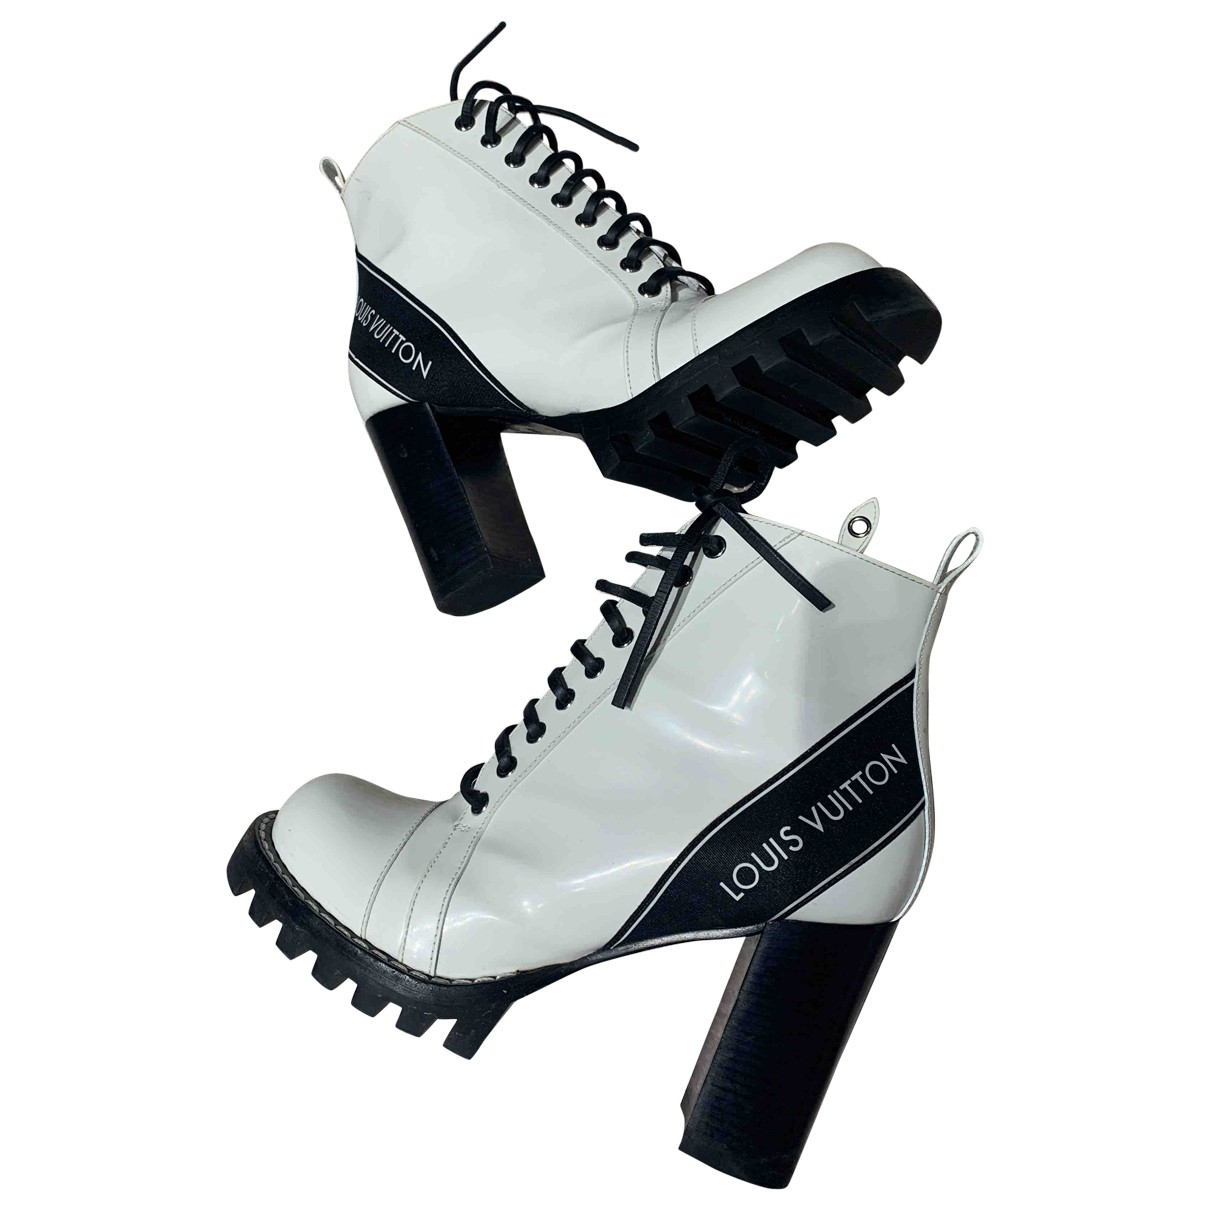 Louis Vuitton Star Trail White Patent leather Ankle boots for Women 39.5 EU